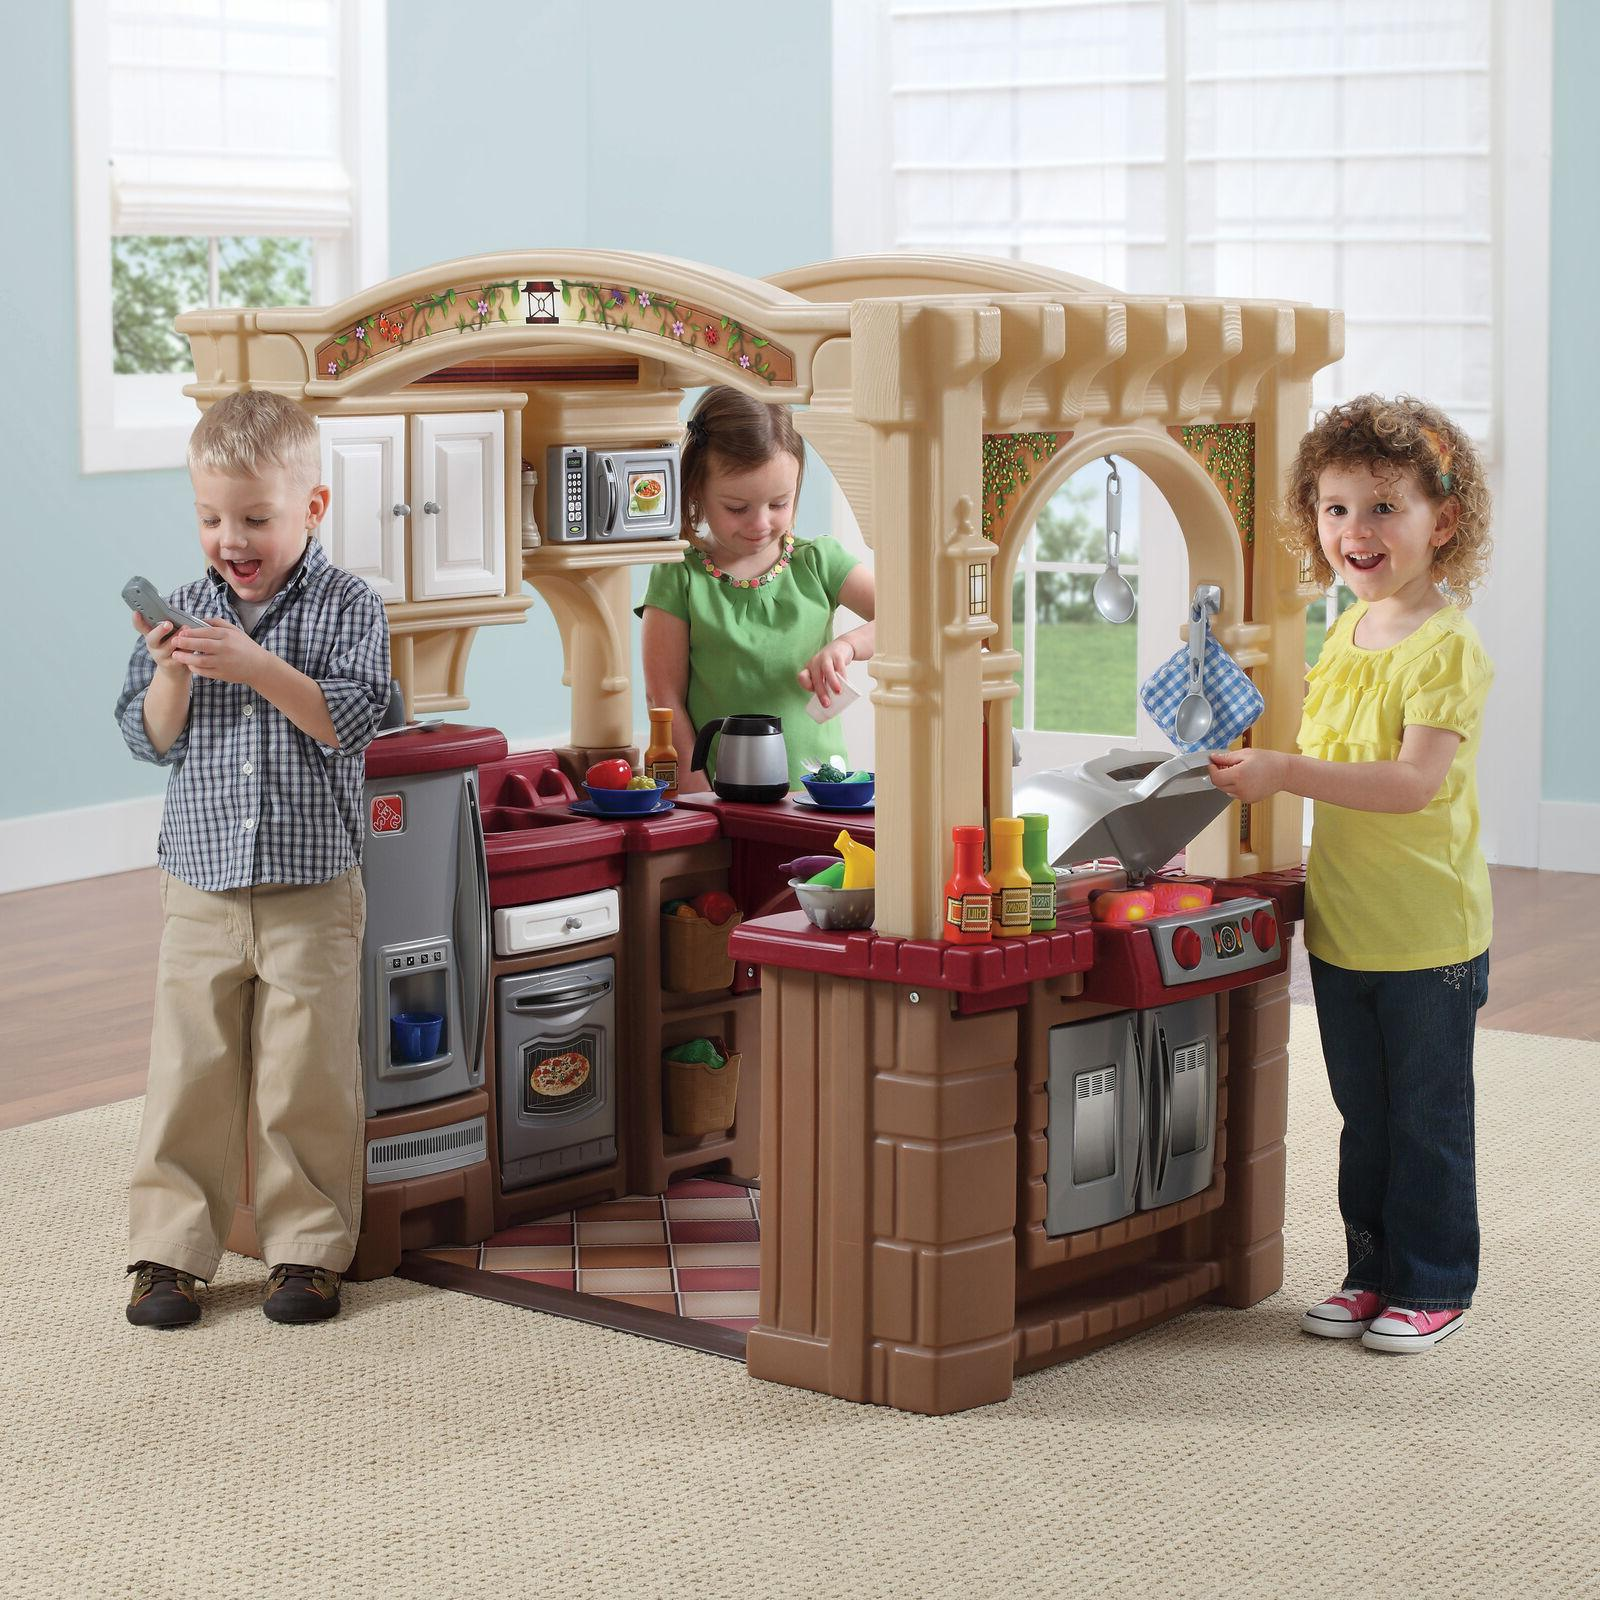 toddler small child pretend playhouse role